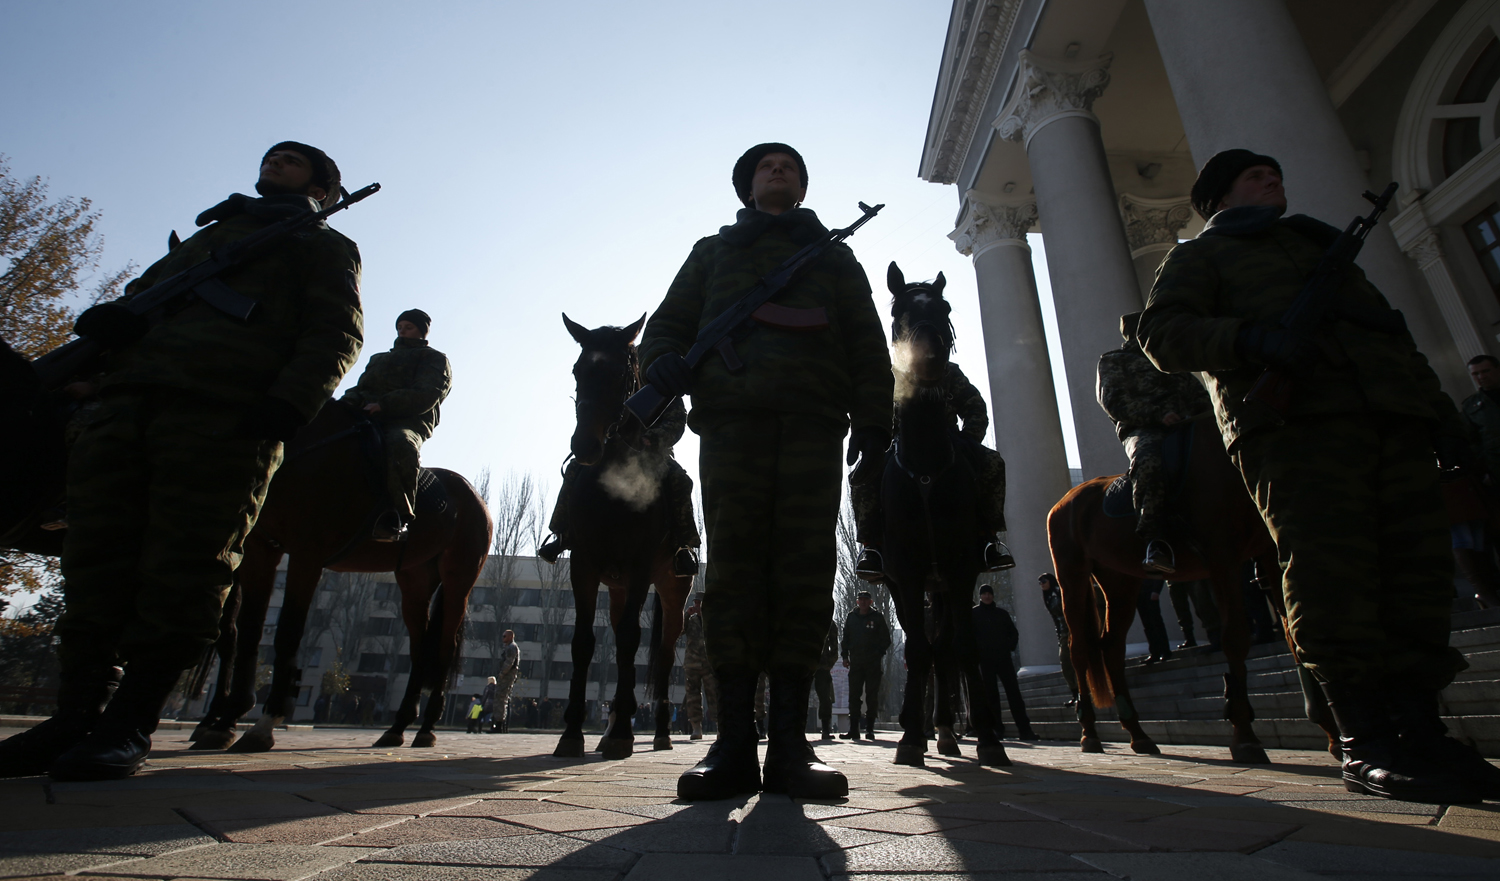 Members of an honour guard hold their weapons as they wait for the arrival of separatist leader Alexander Zakharchenko in front of a theatre in Donetsk, eastern Ukraine on November 4, 2014.